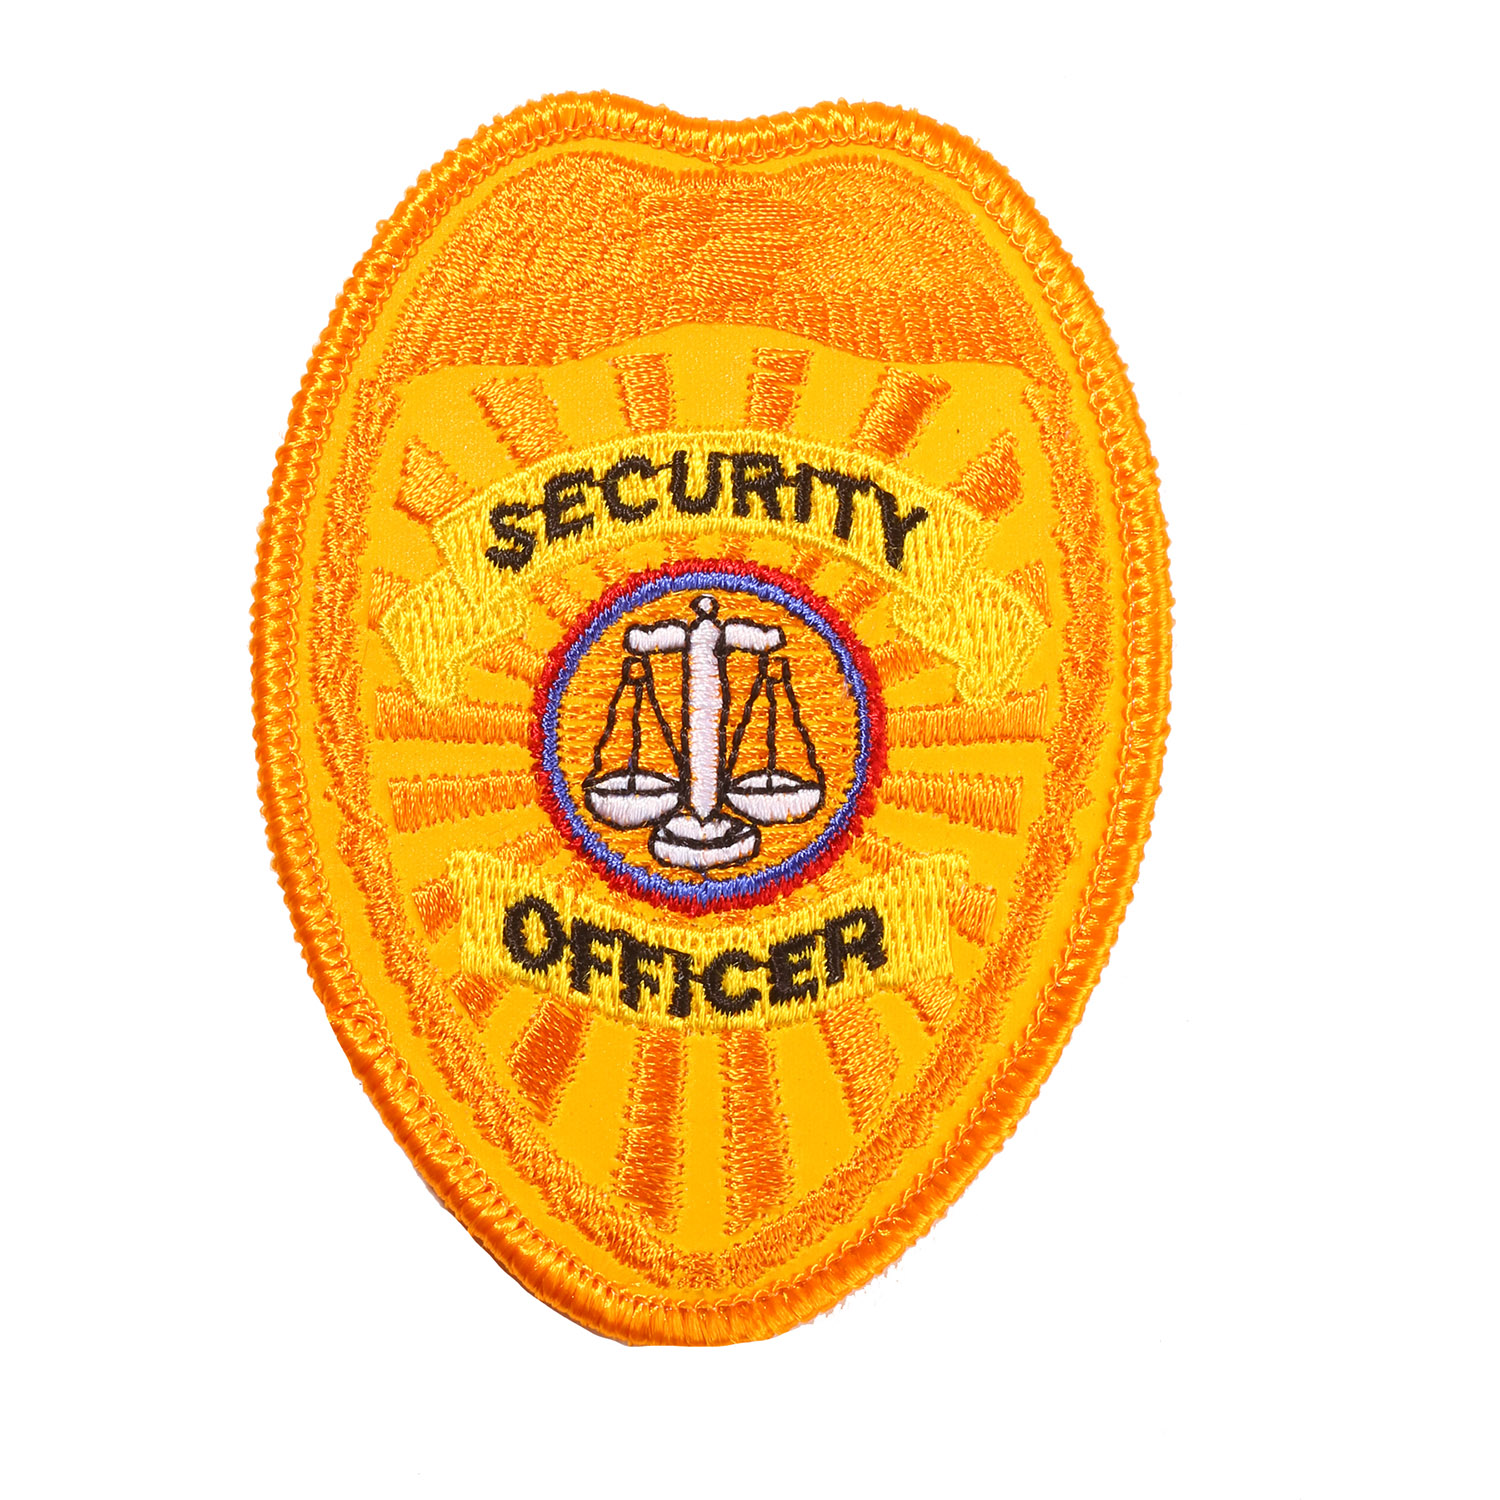 Penn Emblem Security Officer Reflective Emblem